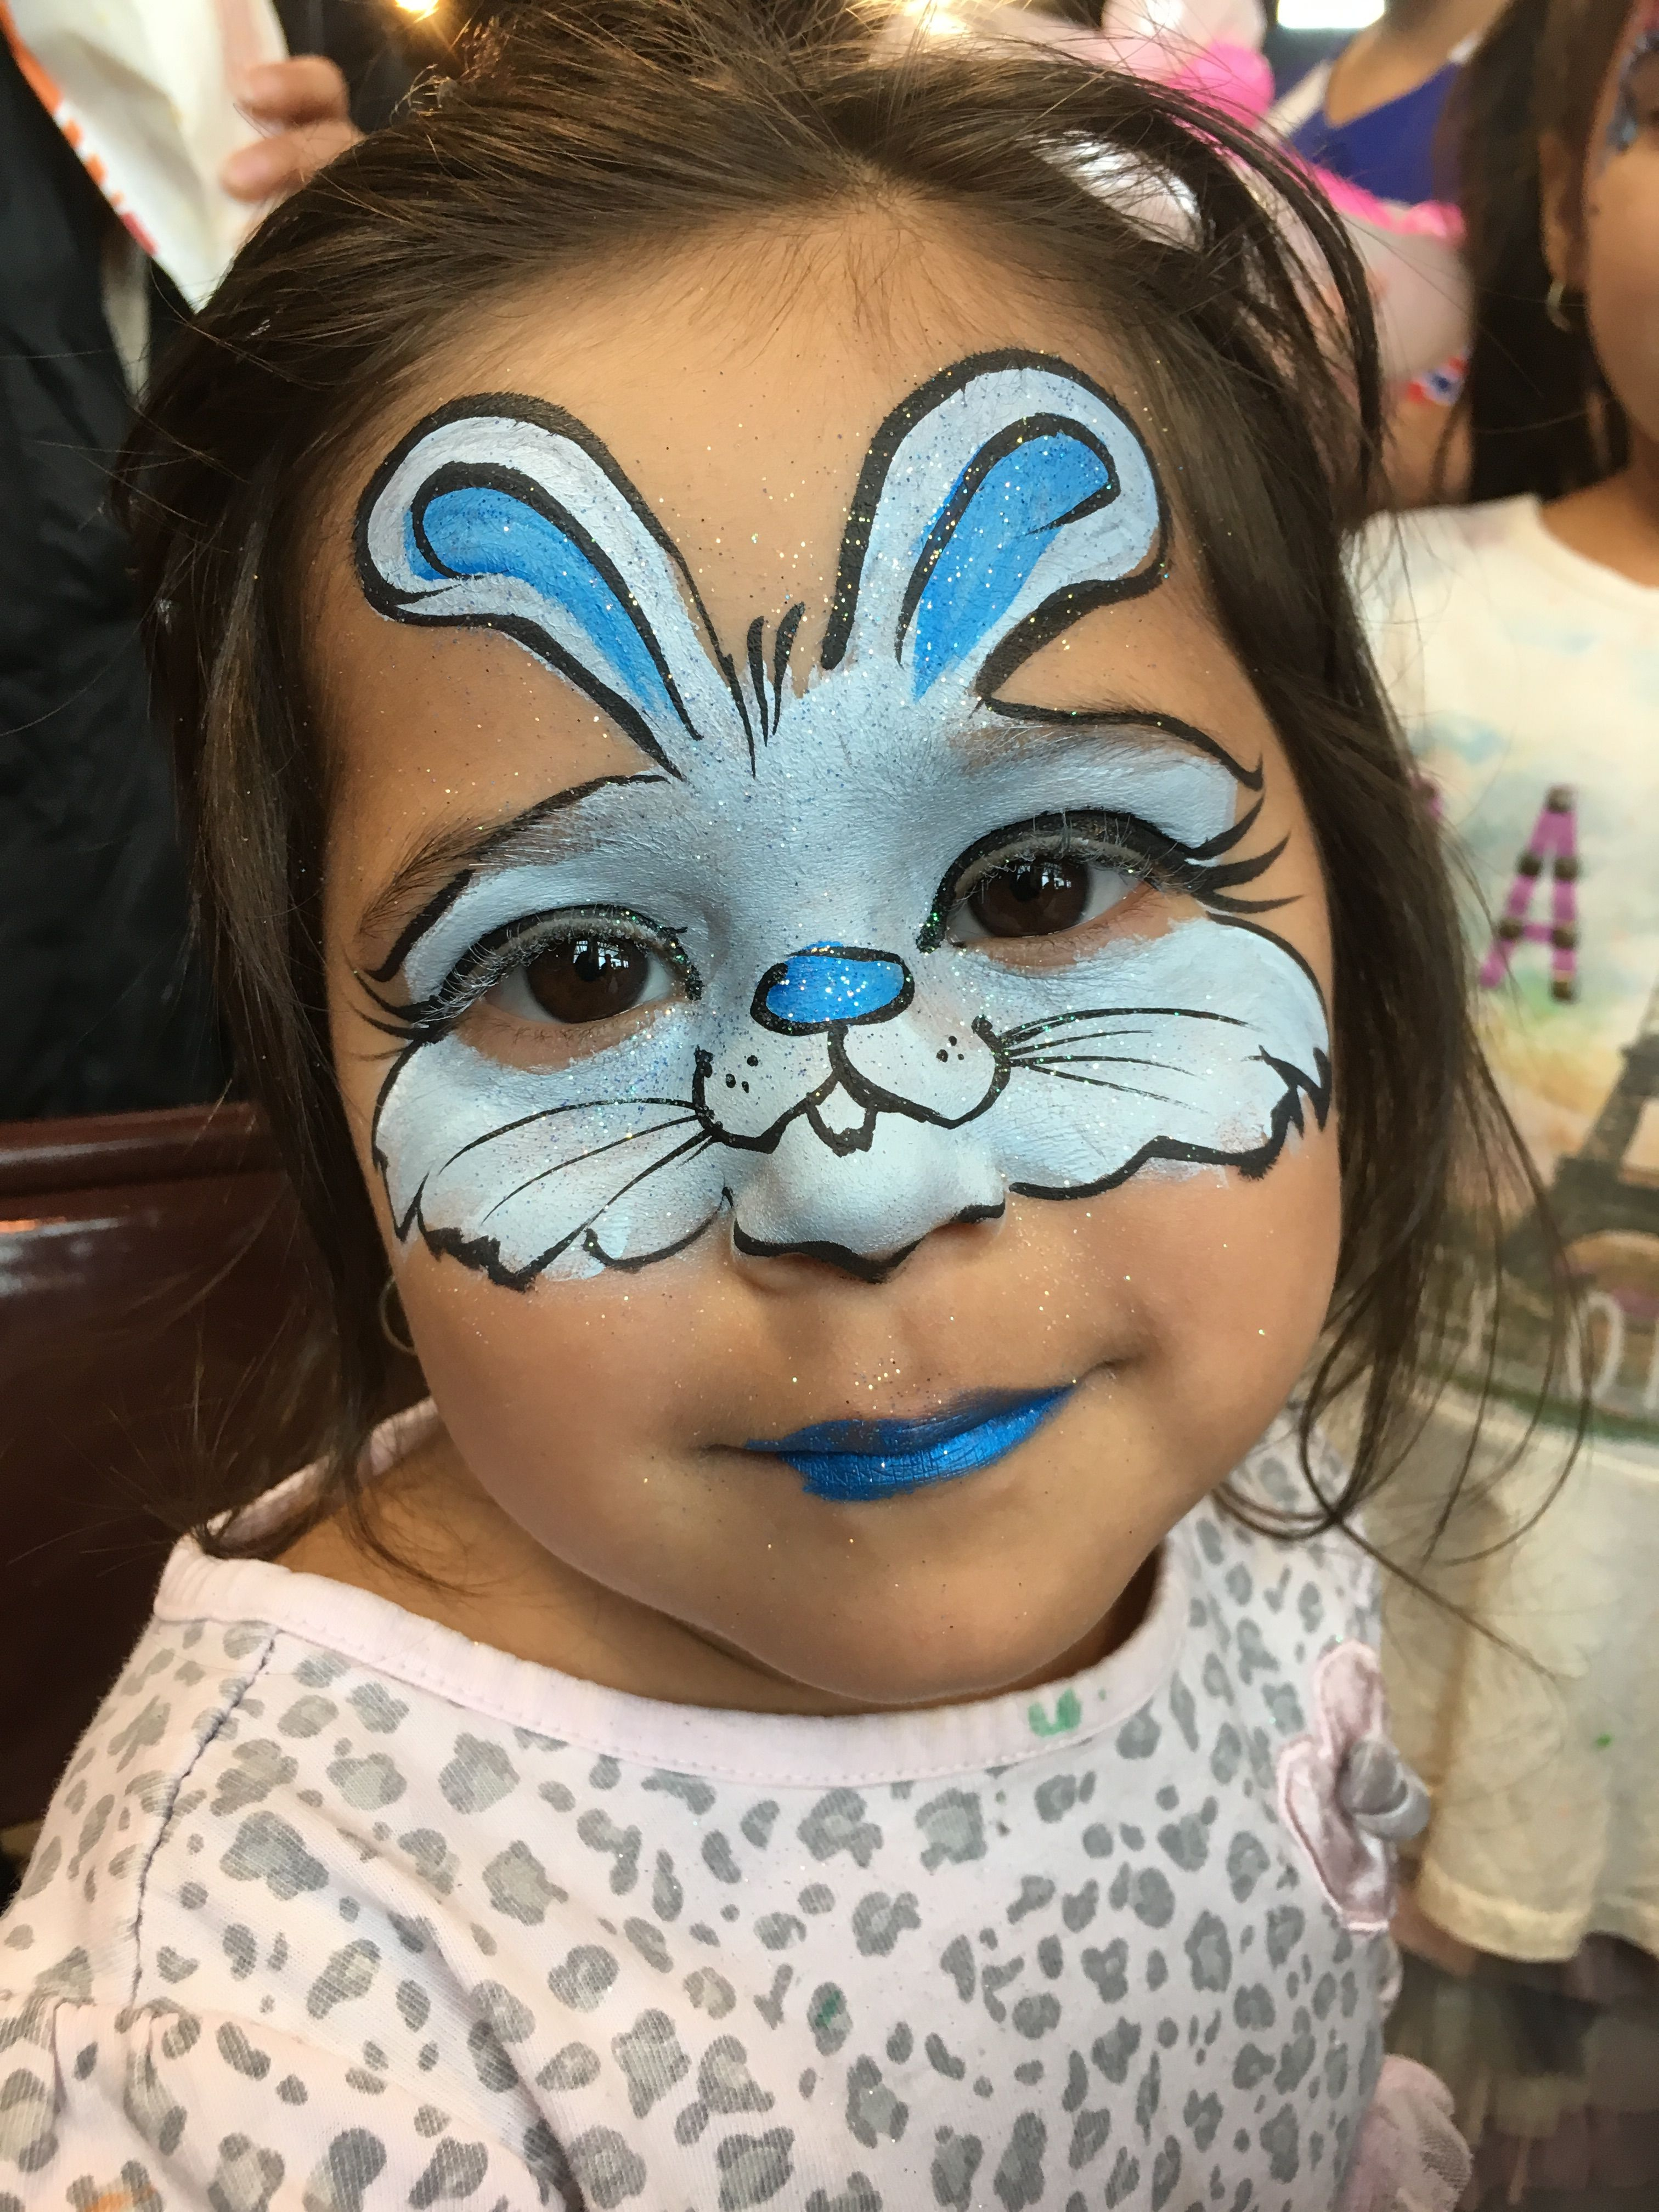 Bunny Face Stops At The Nose By Wina Shelley Of Party Picassos Face Painting 312 316 7819 Face Painting Designs Girl Face Painting Face Painting